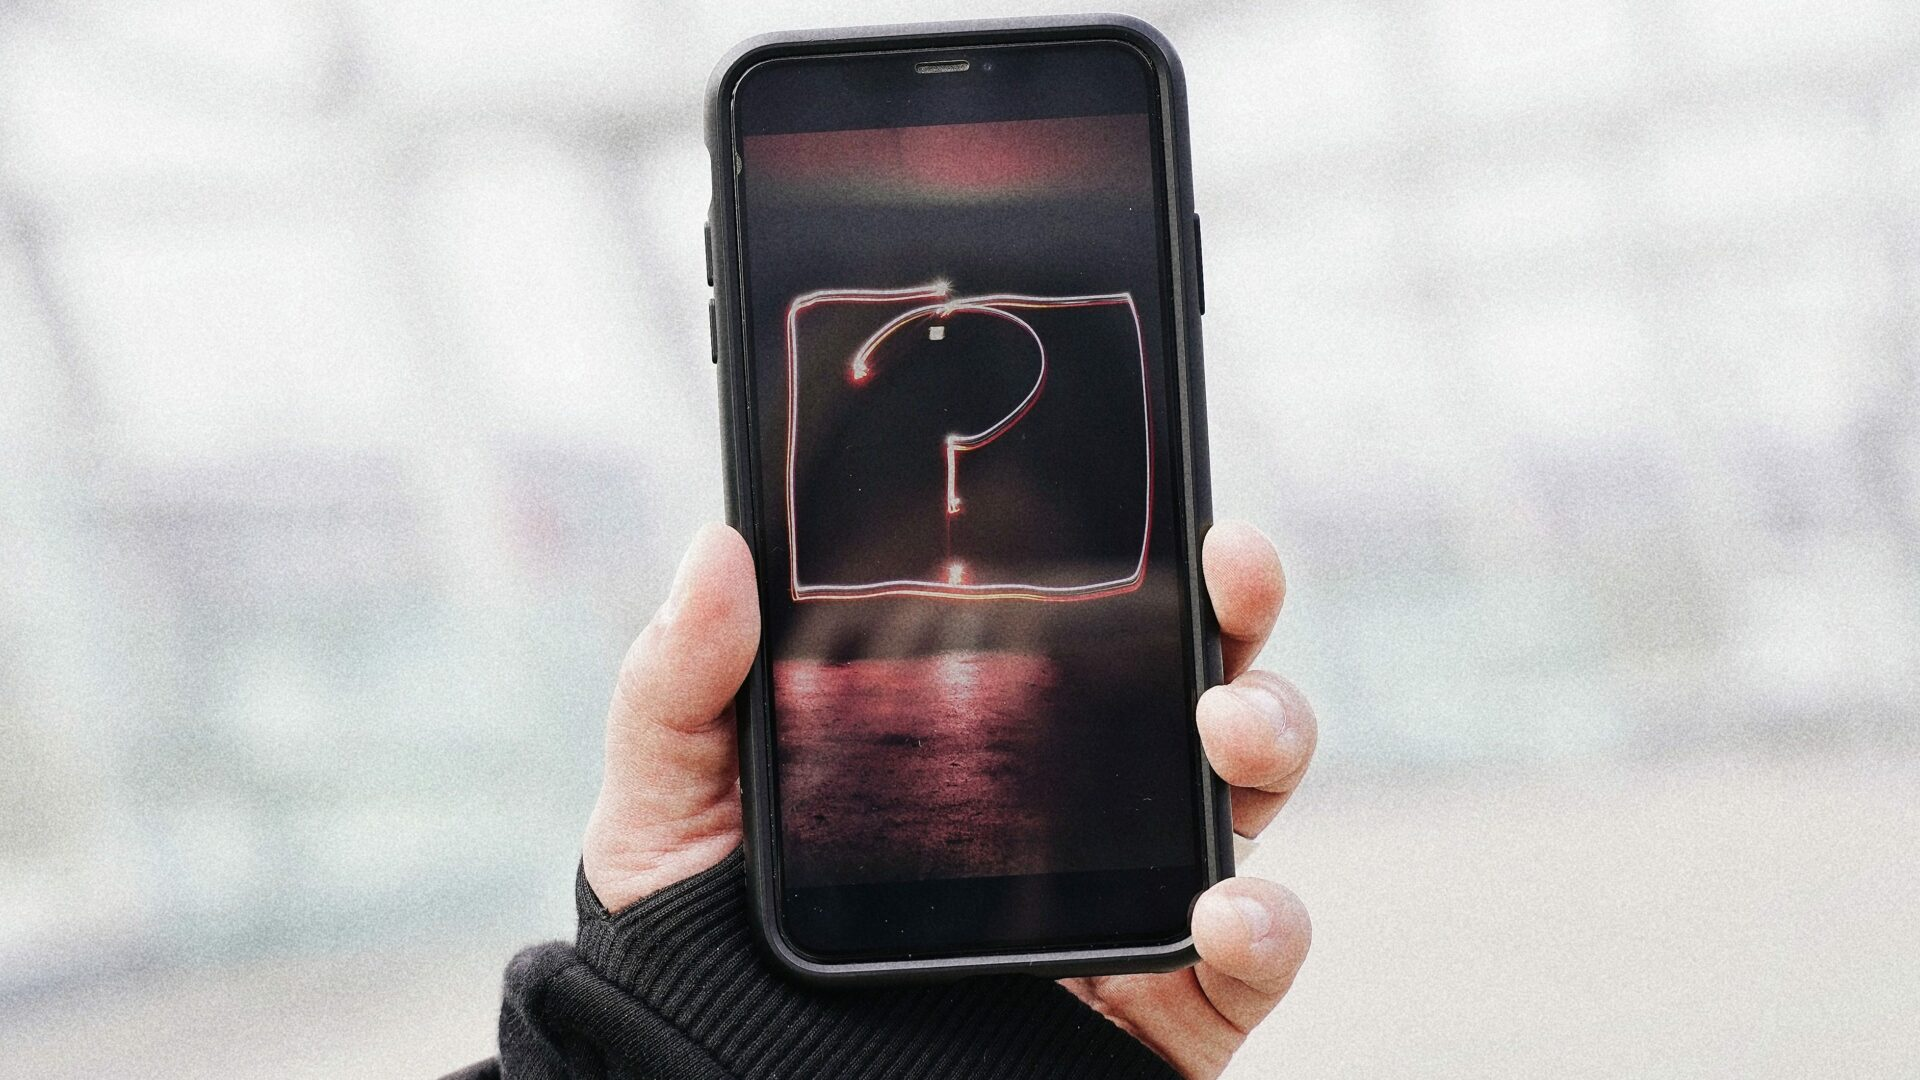 Hand holding smartphone with question mark on the screen (Photo by Olenka Sergienko on Pexels.com)